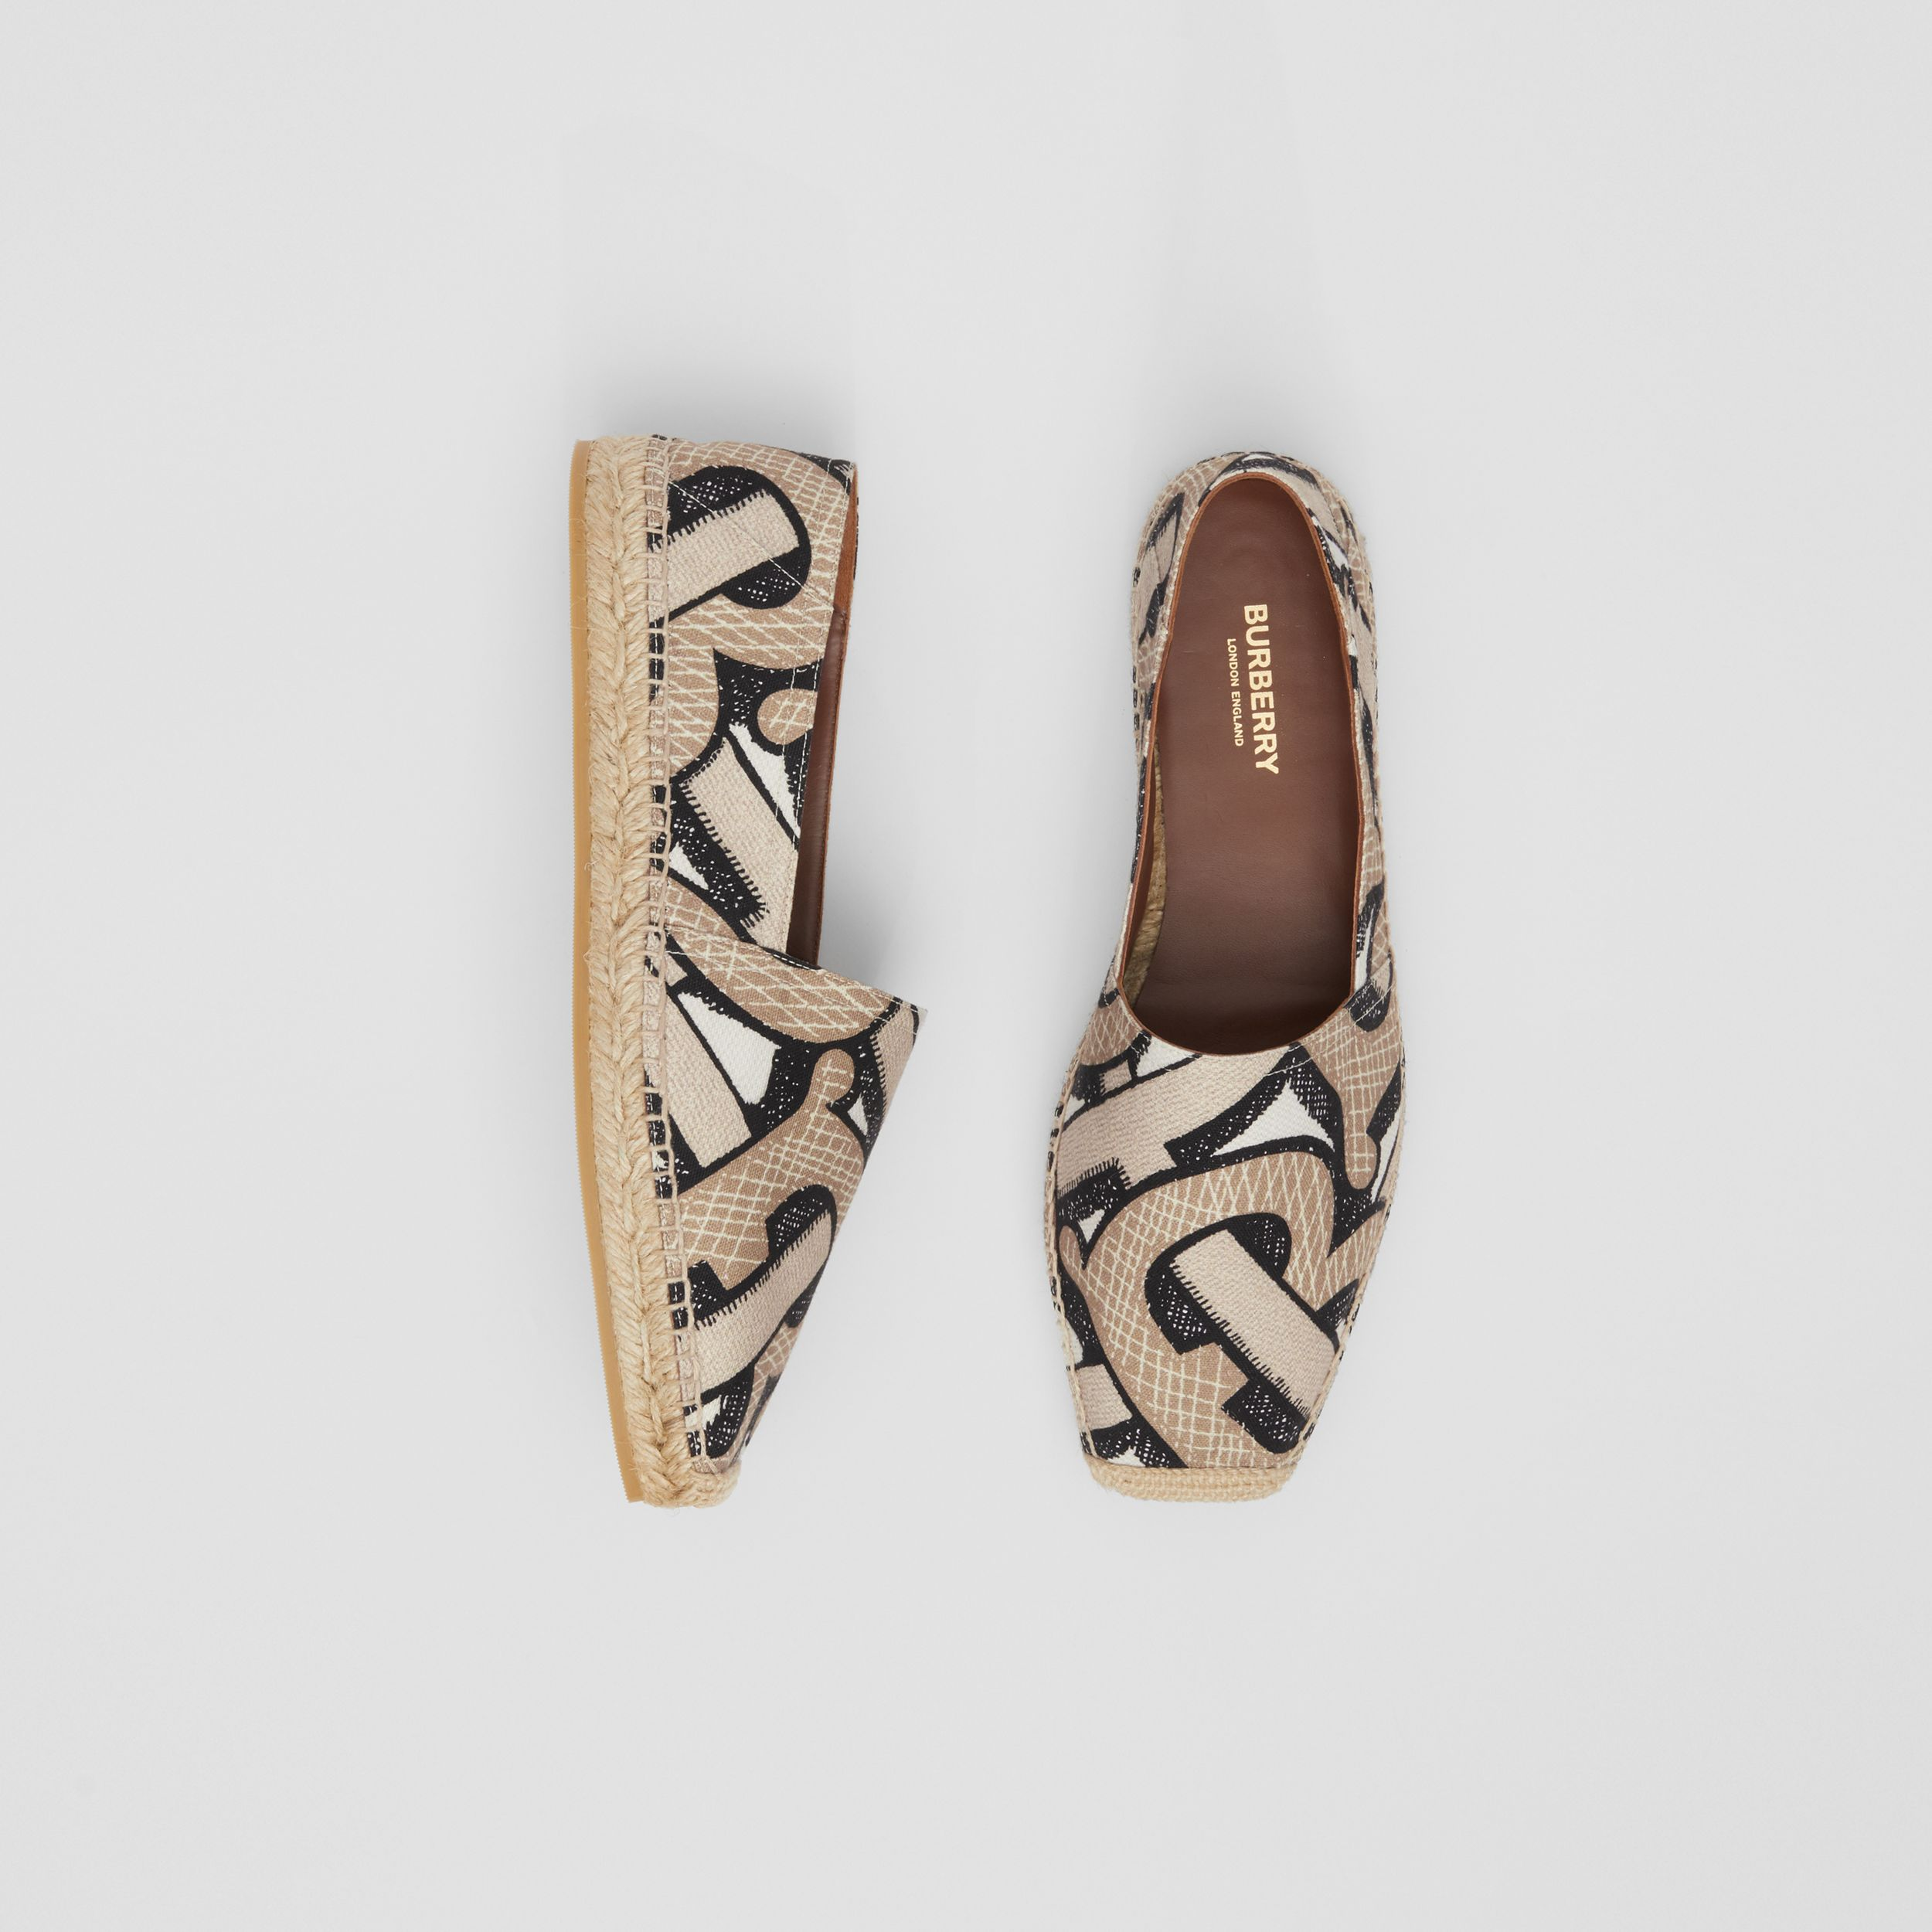 Monogram Print Cotton Canvas Espadrilles in Dark Beige - Women | Burberry Canada - 1